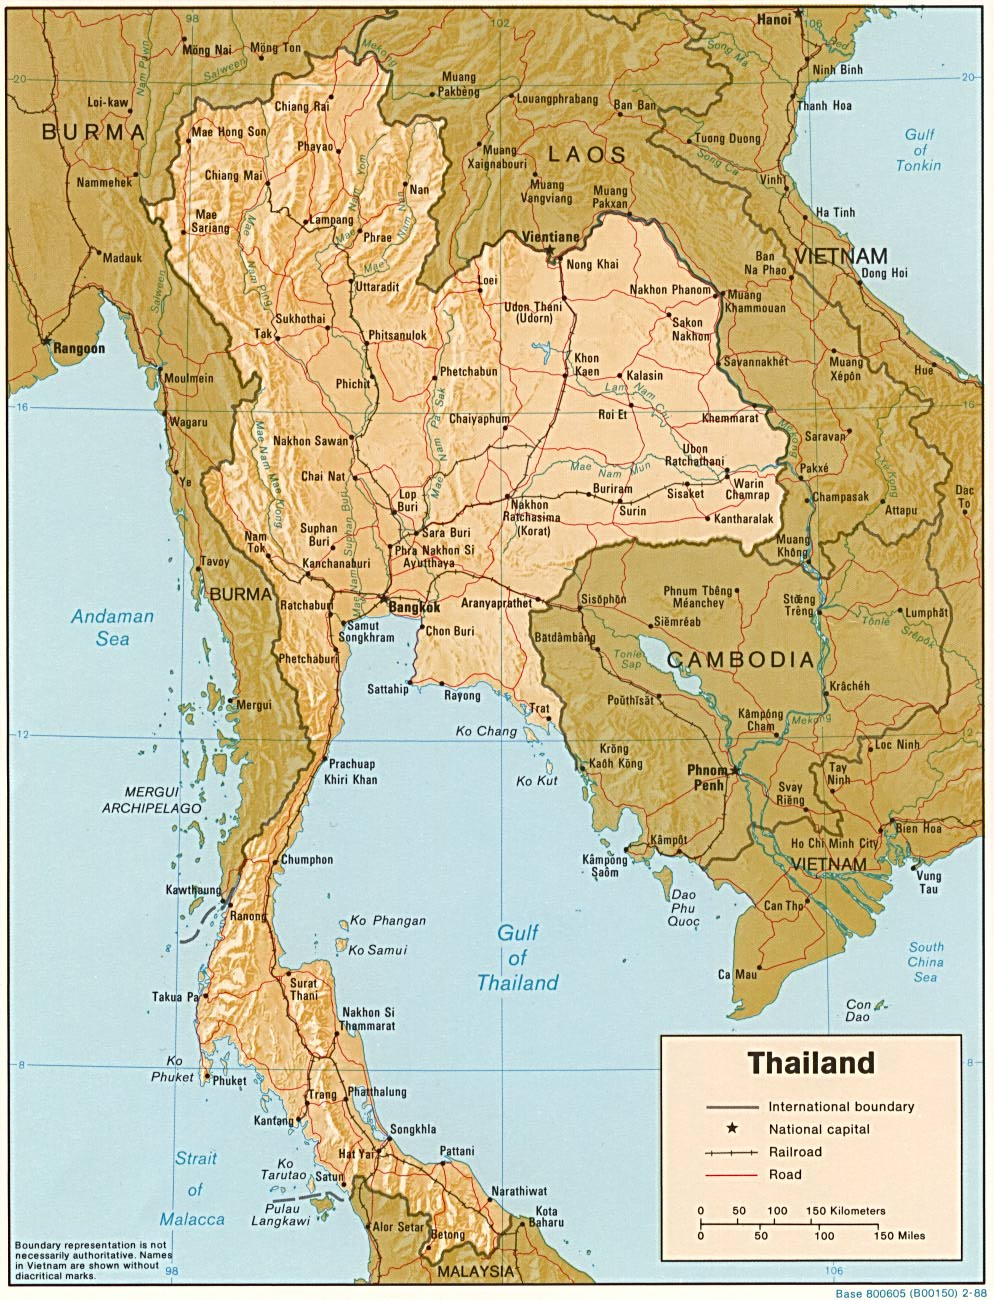 Map of Thailand, Geography Map For Thailand on map for u.s, map for guadeloupe, map for nepal, map for somalia, map for australia, map for central african republic, map for romania, map for germany, map for palestine, map for cyprus, map for el salvador, map for taiwan, map for bangkok, map for ethiopia, map for lithuania, map for canada, map for east africa, map singapore, map for mozambique, map for korea,